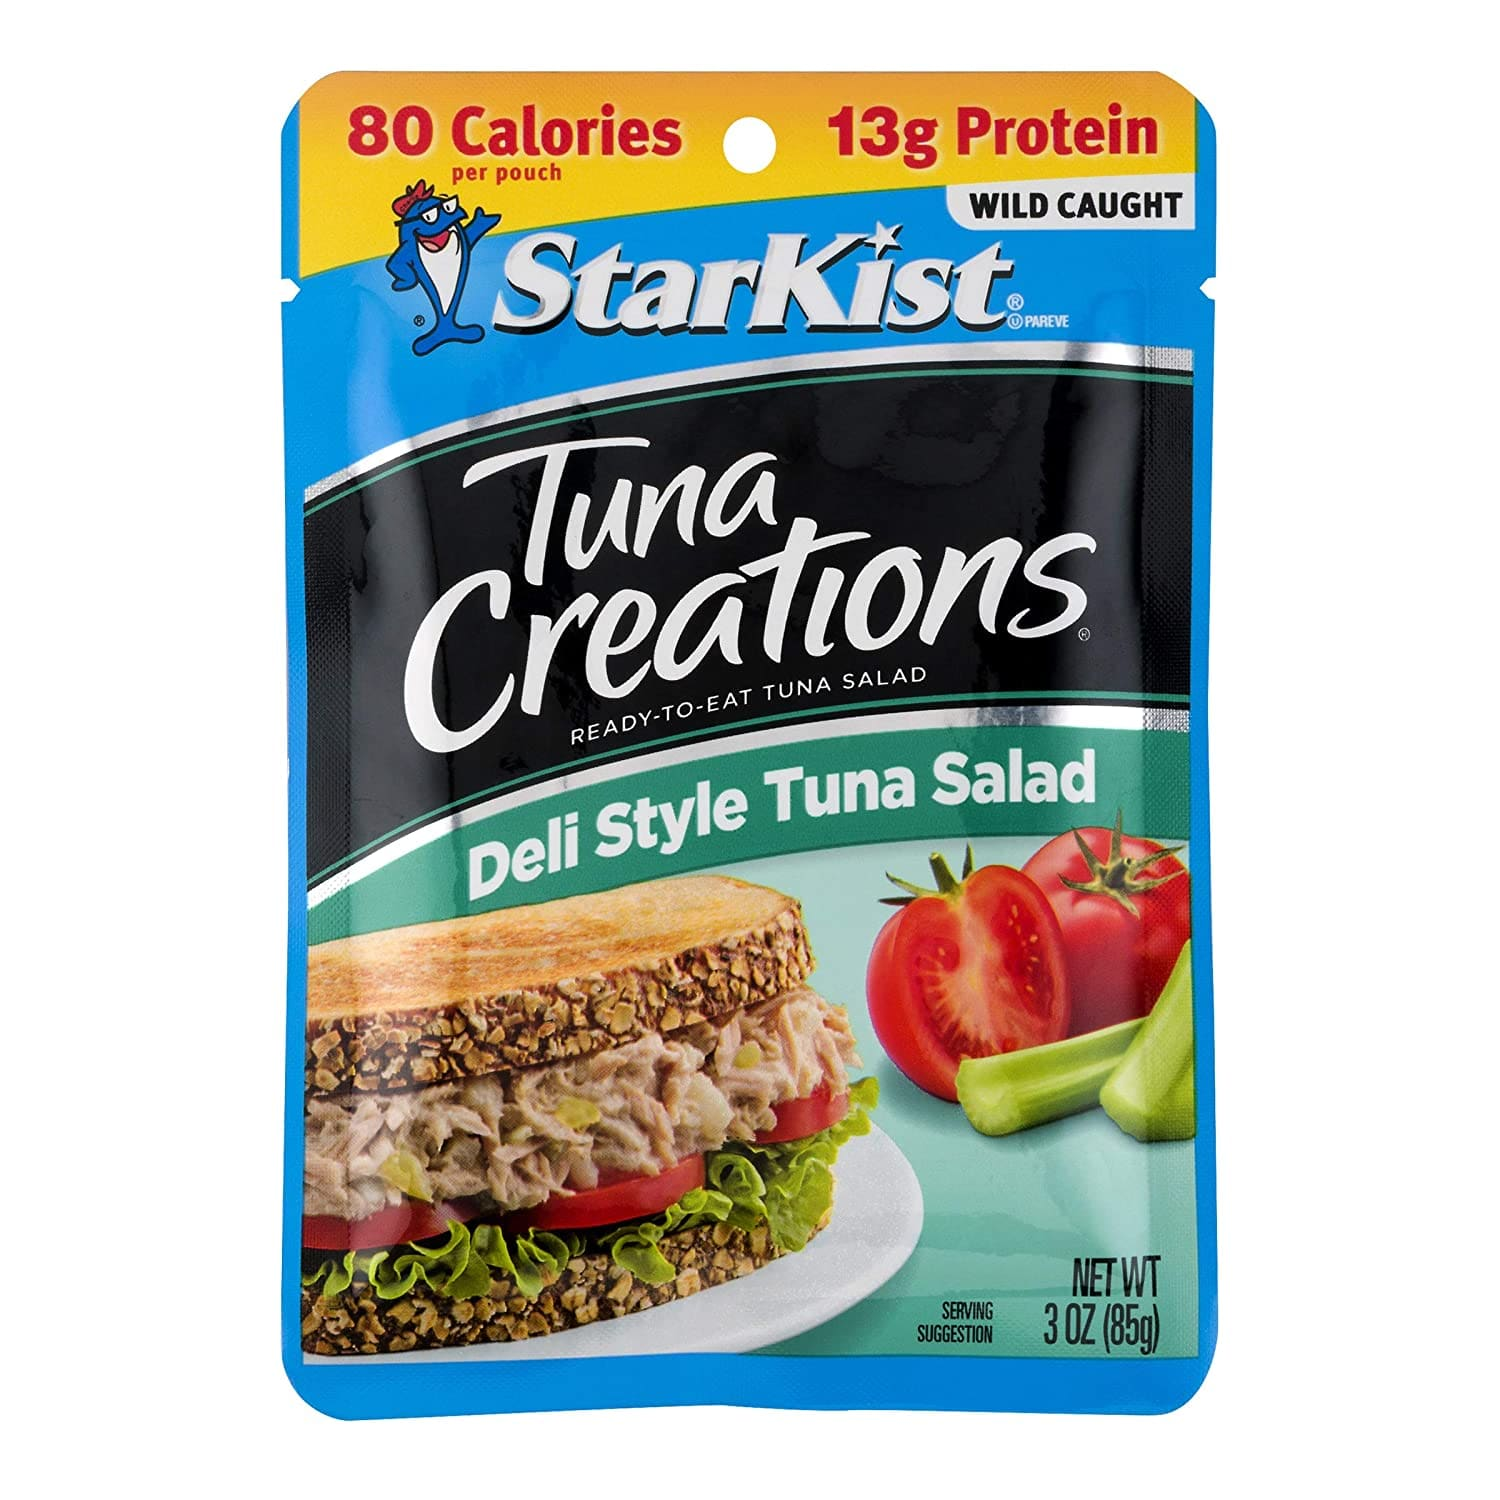 12-Pack 3-Oz StarKist Tuna Creations Deli Style Tuna Salad Pouches $11.29 ($0.94 each) w/ S&S + Free Shipping w/ Prime or on orders over $25